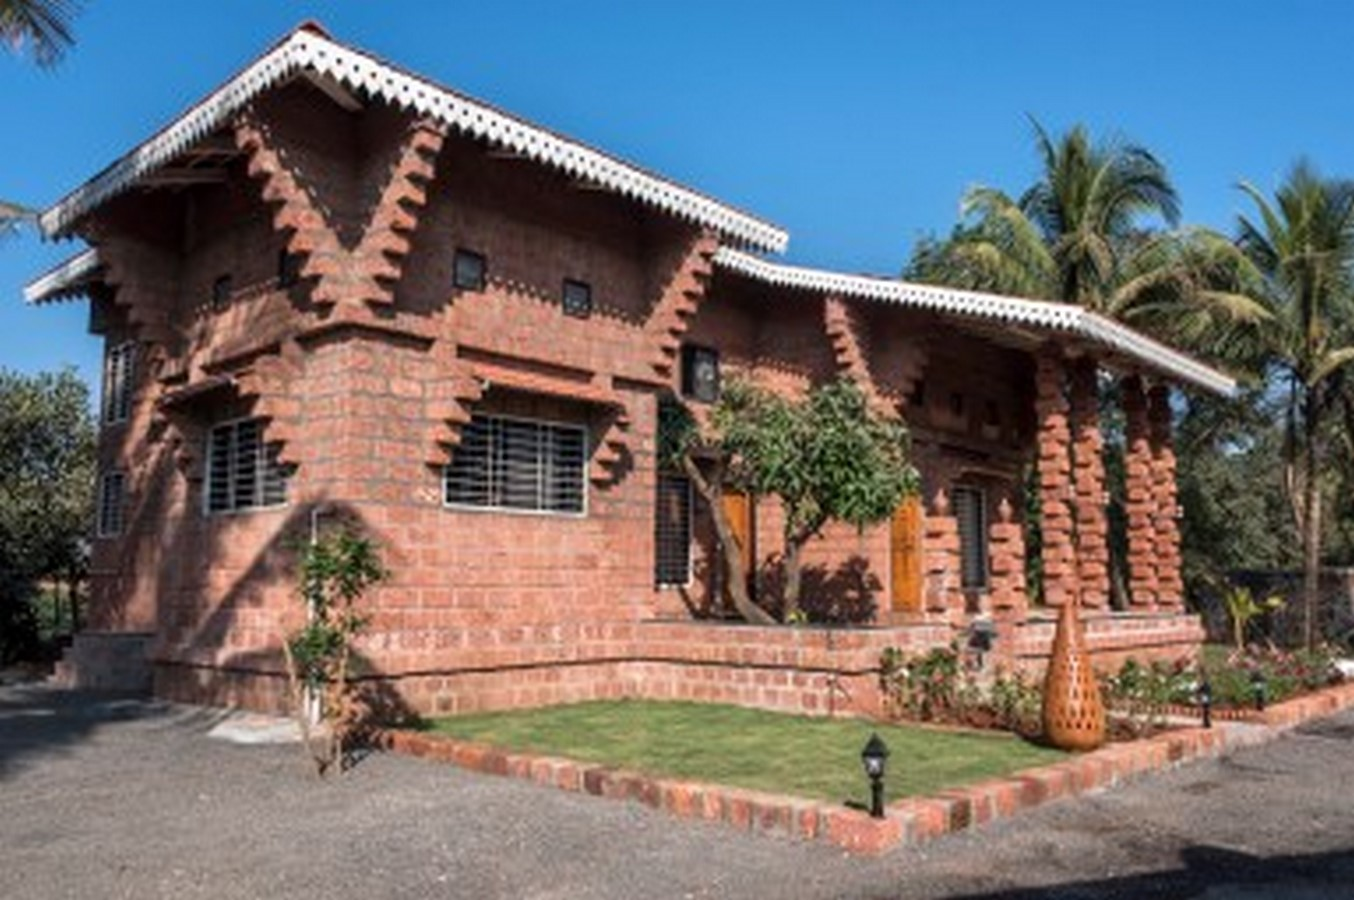 10 Examples of Contemporary Vernacular architecture - Sheet5